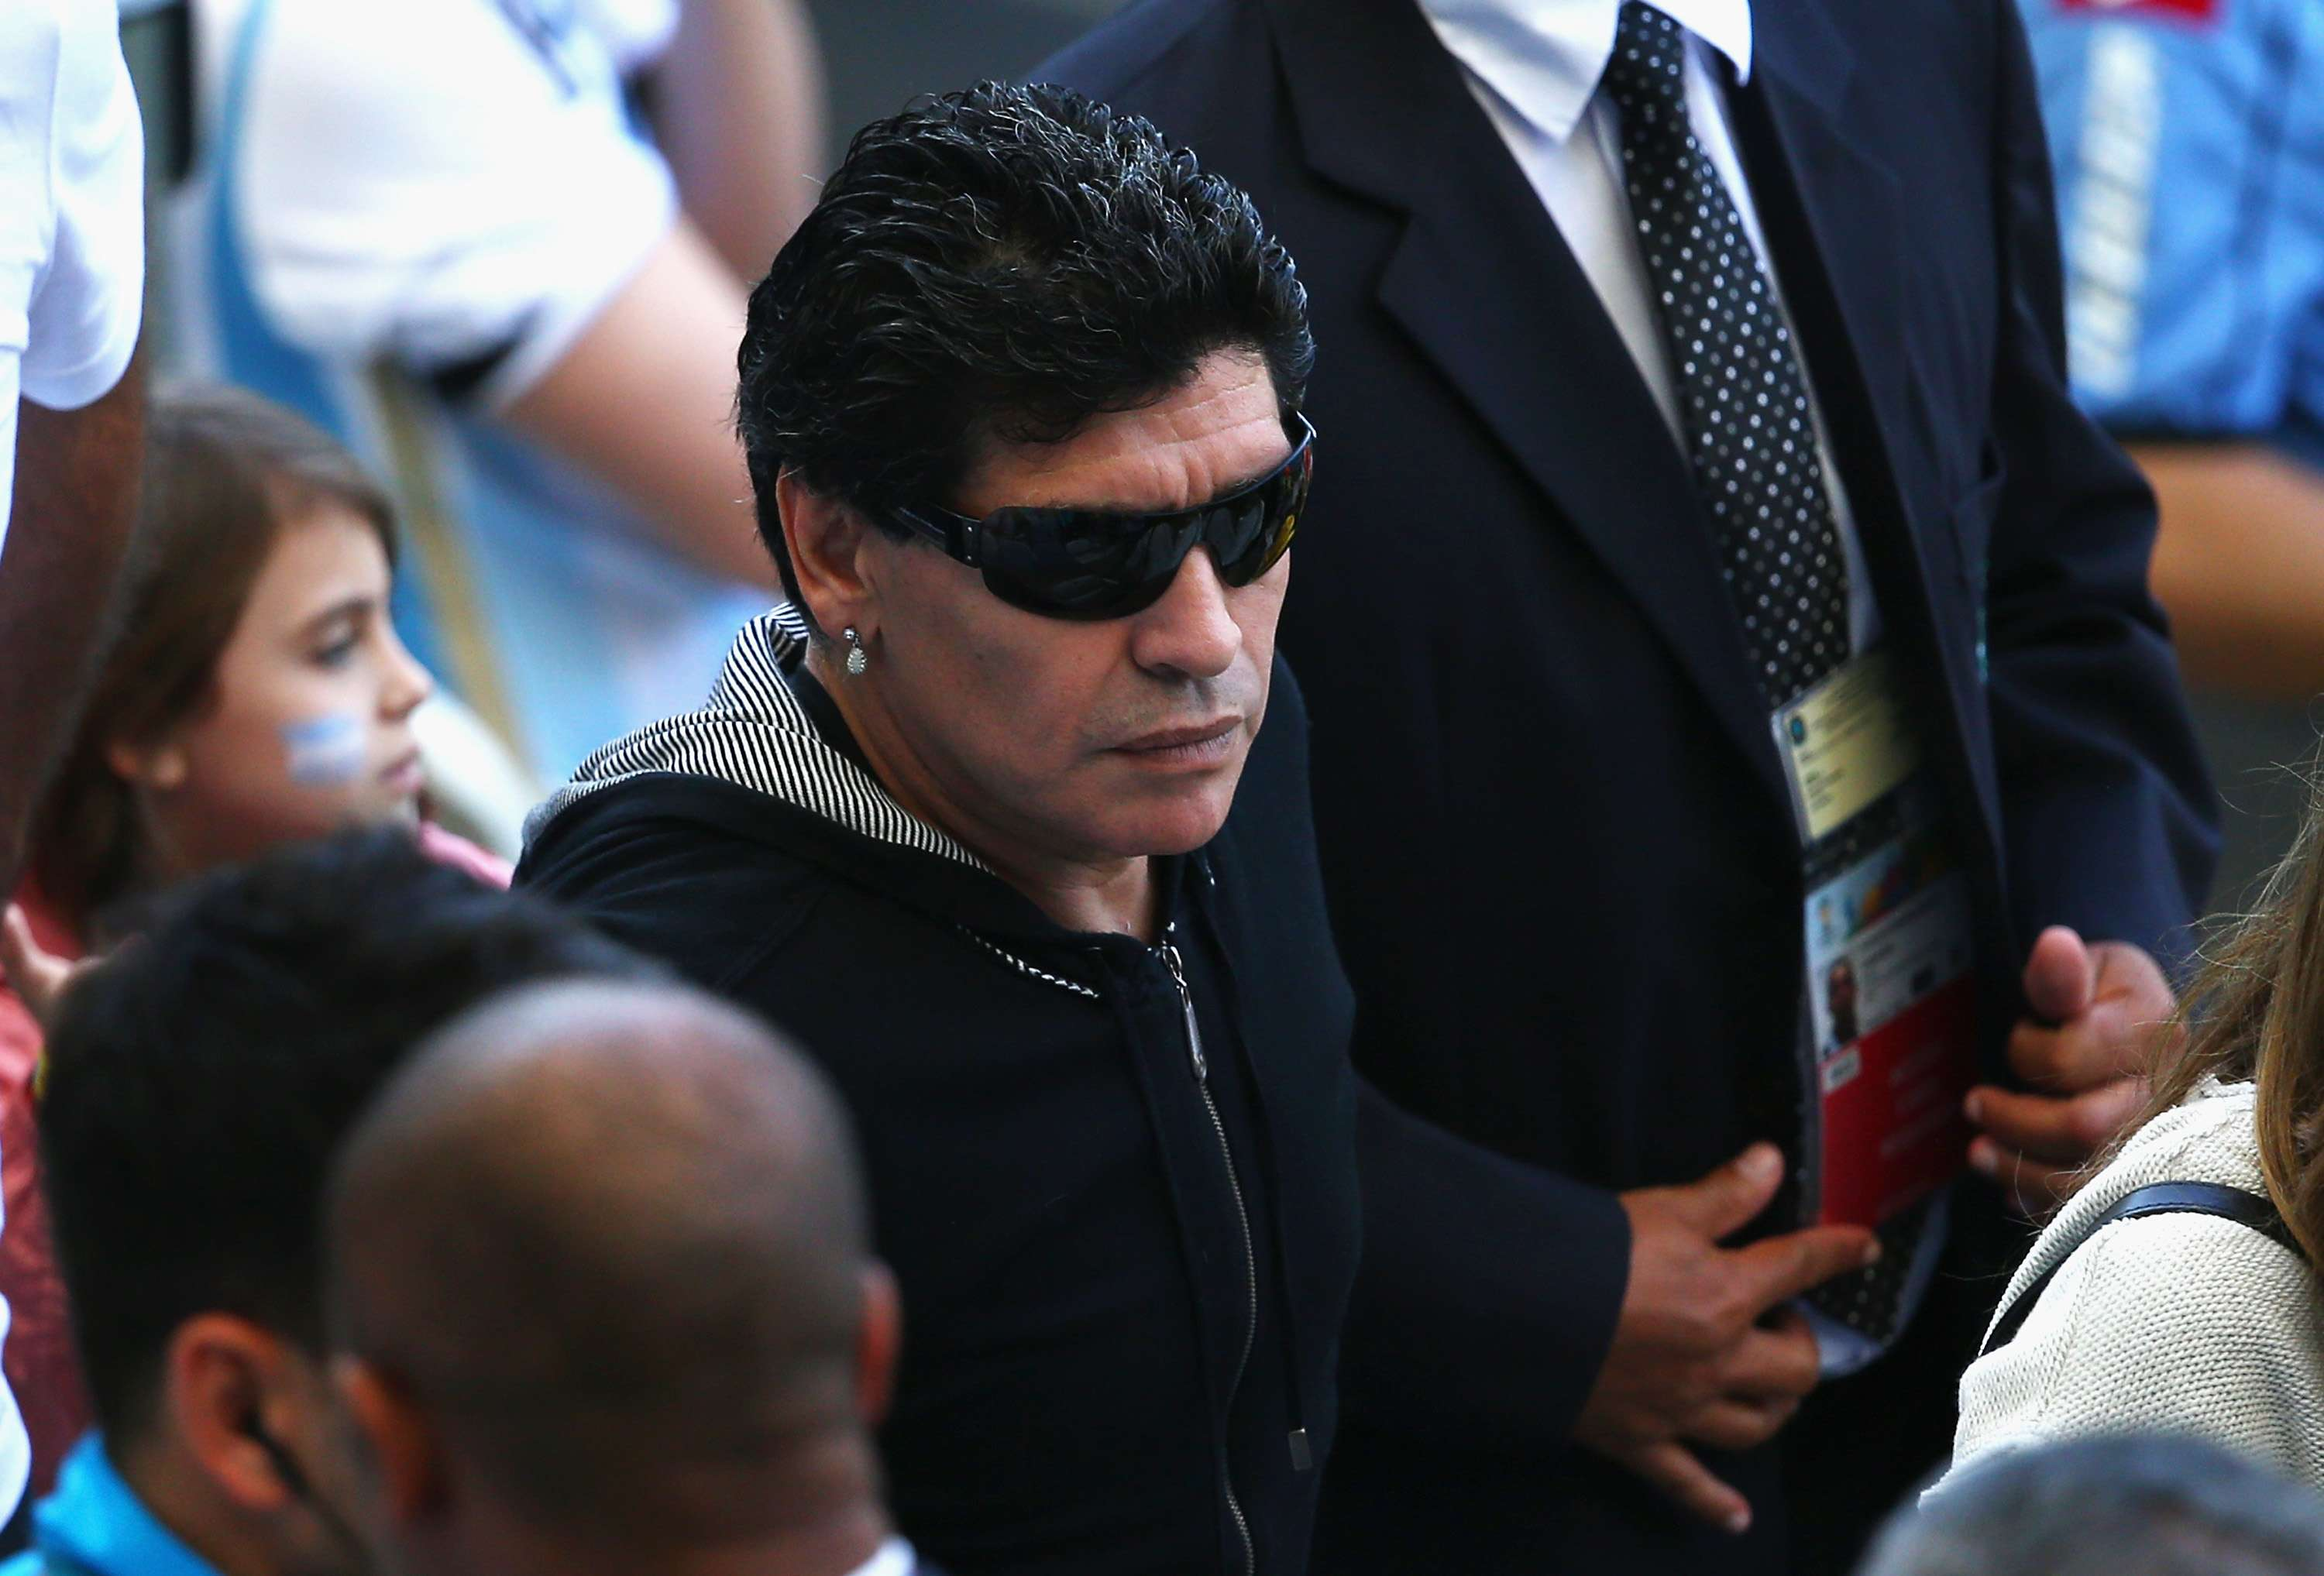 Maradona sends his condolences to Grondona's family